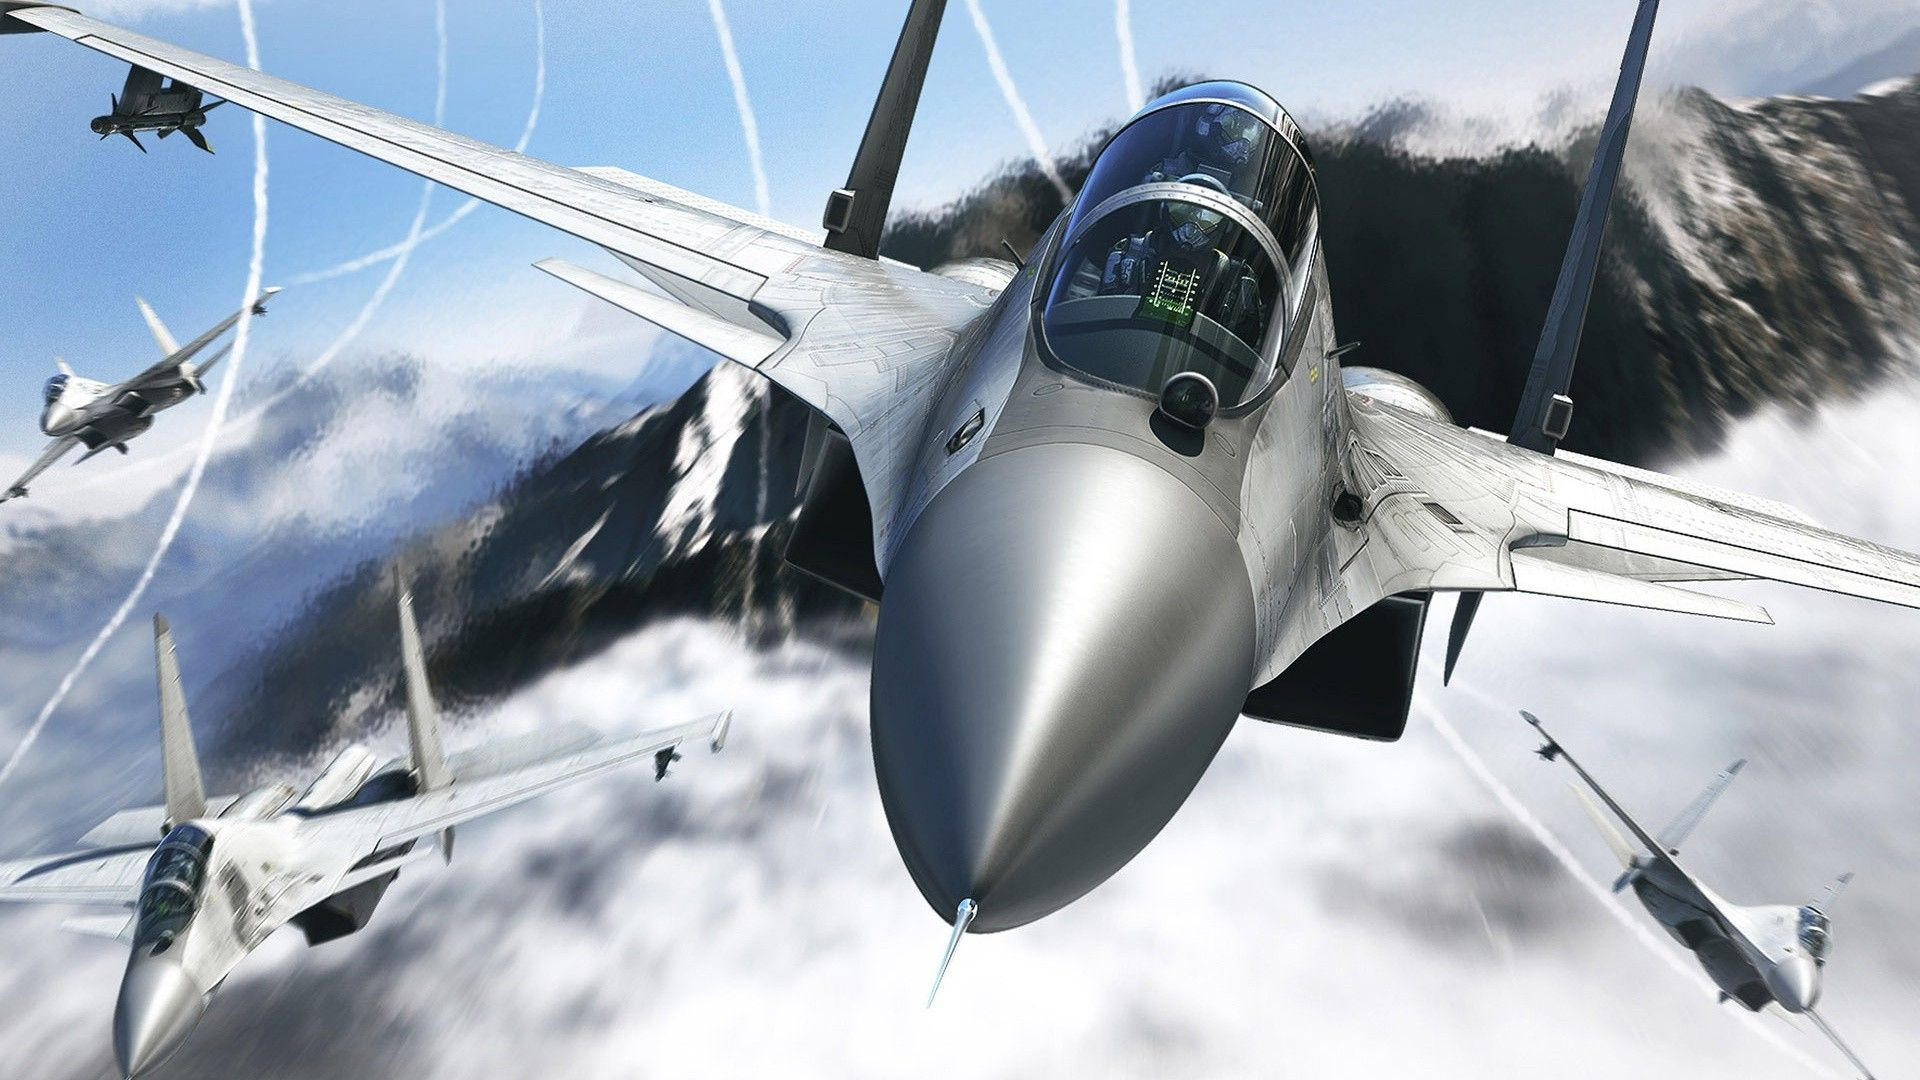 Su30 Mk Fighter Jets Aircraft Fighter Good aircrafts military hd wallpaper